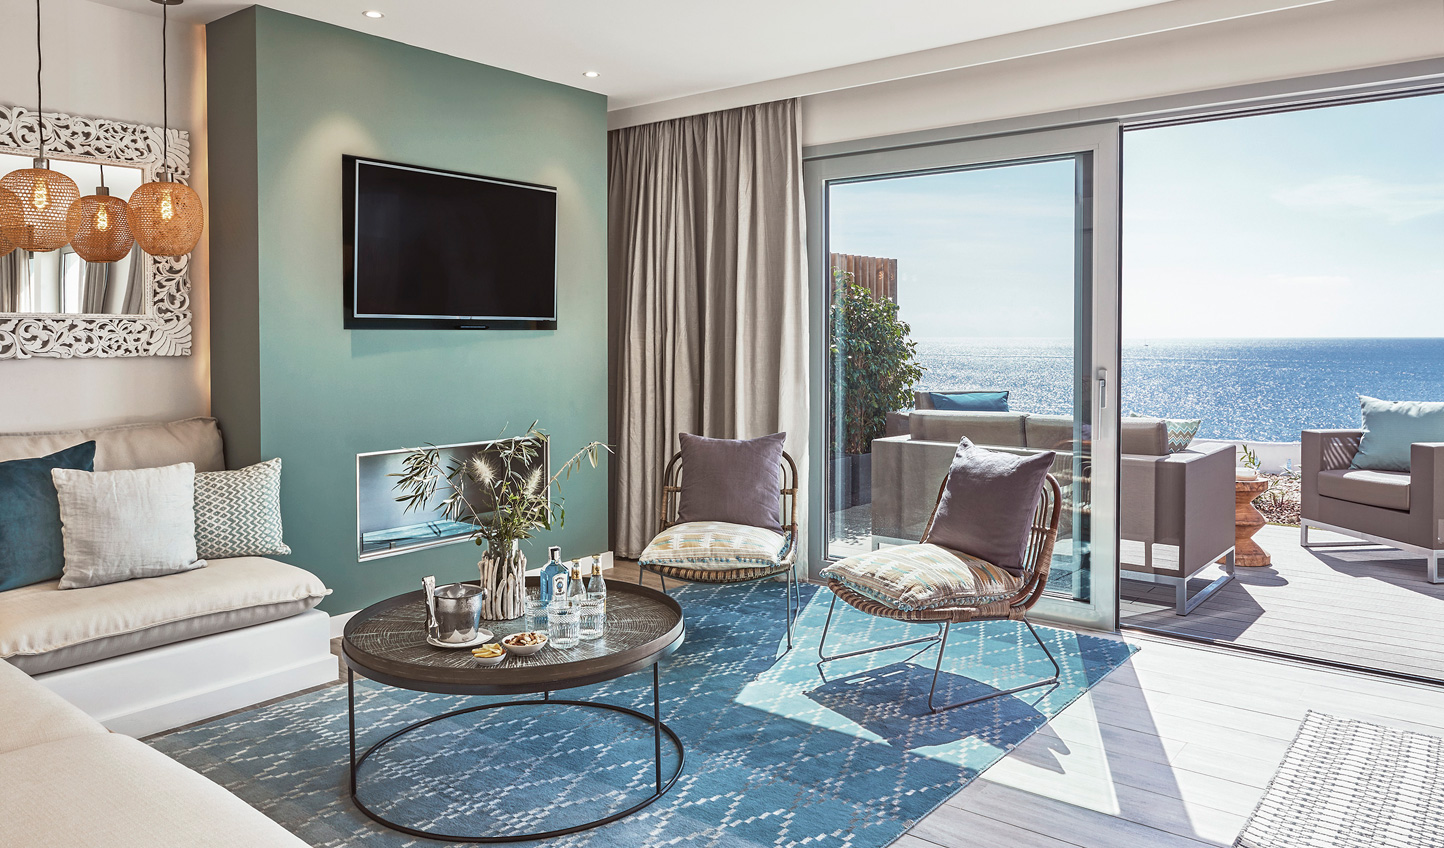 Discover a home from home in your stylish suite